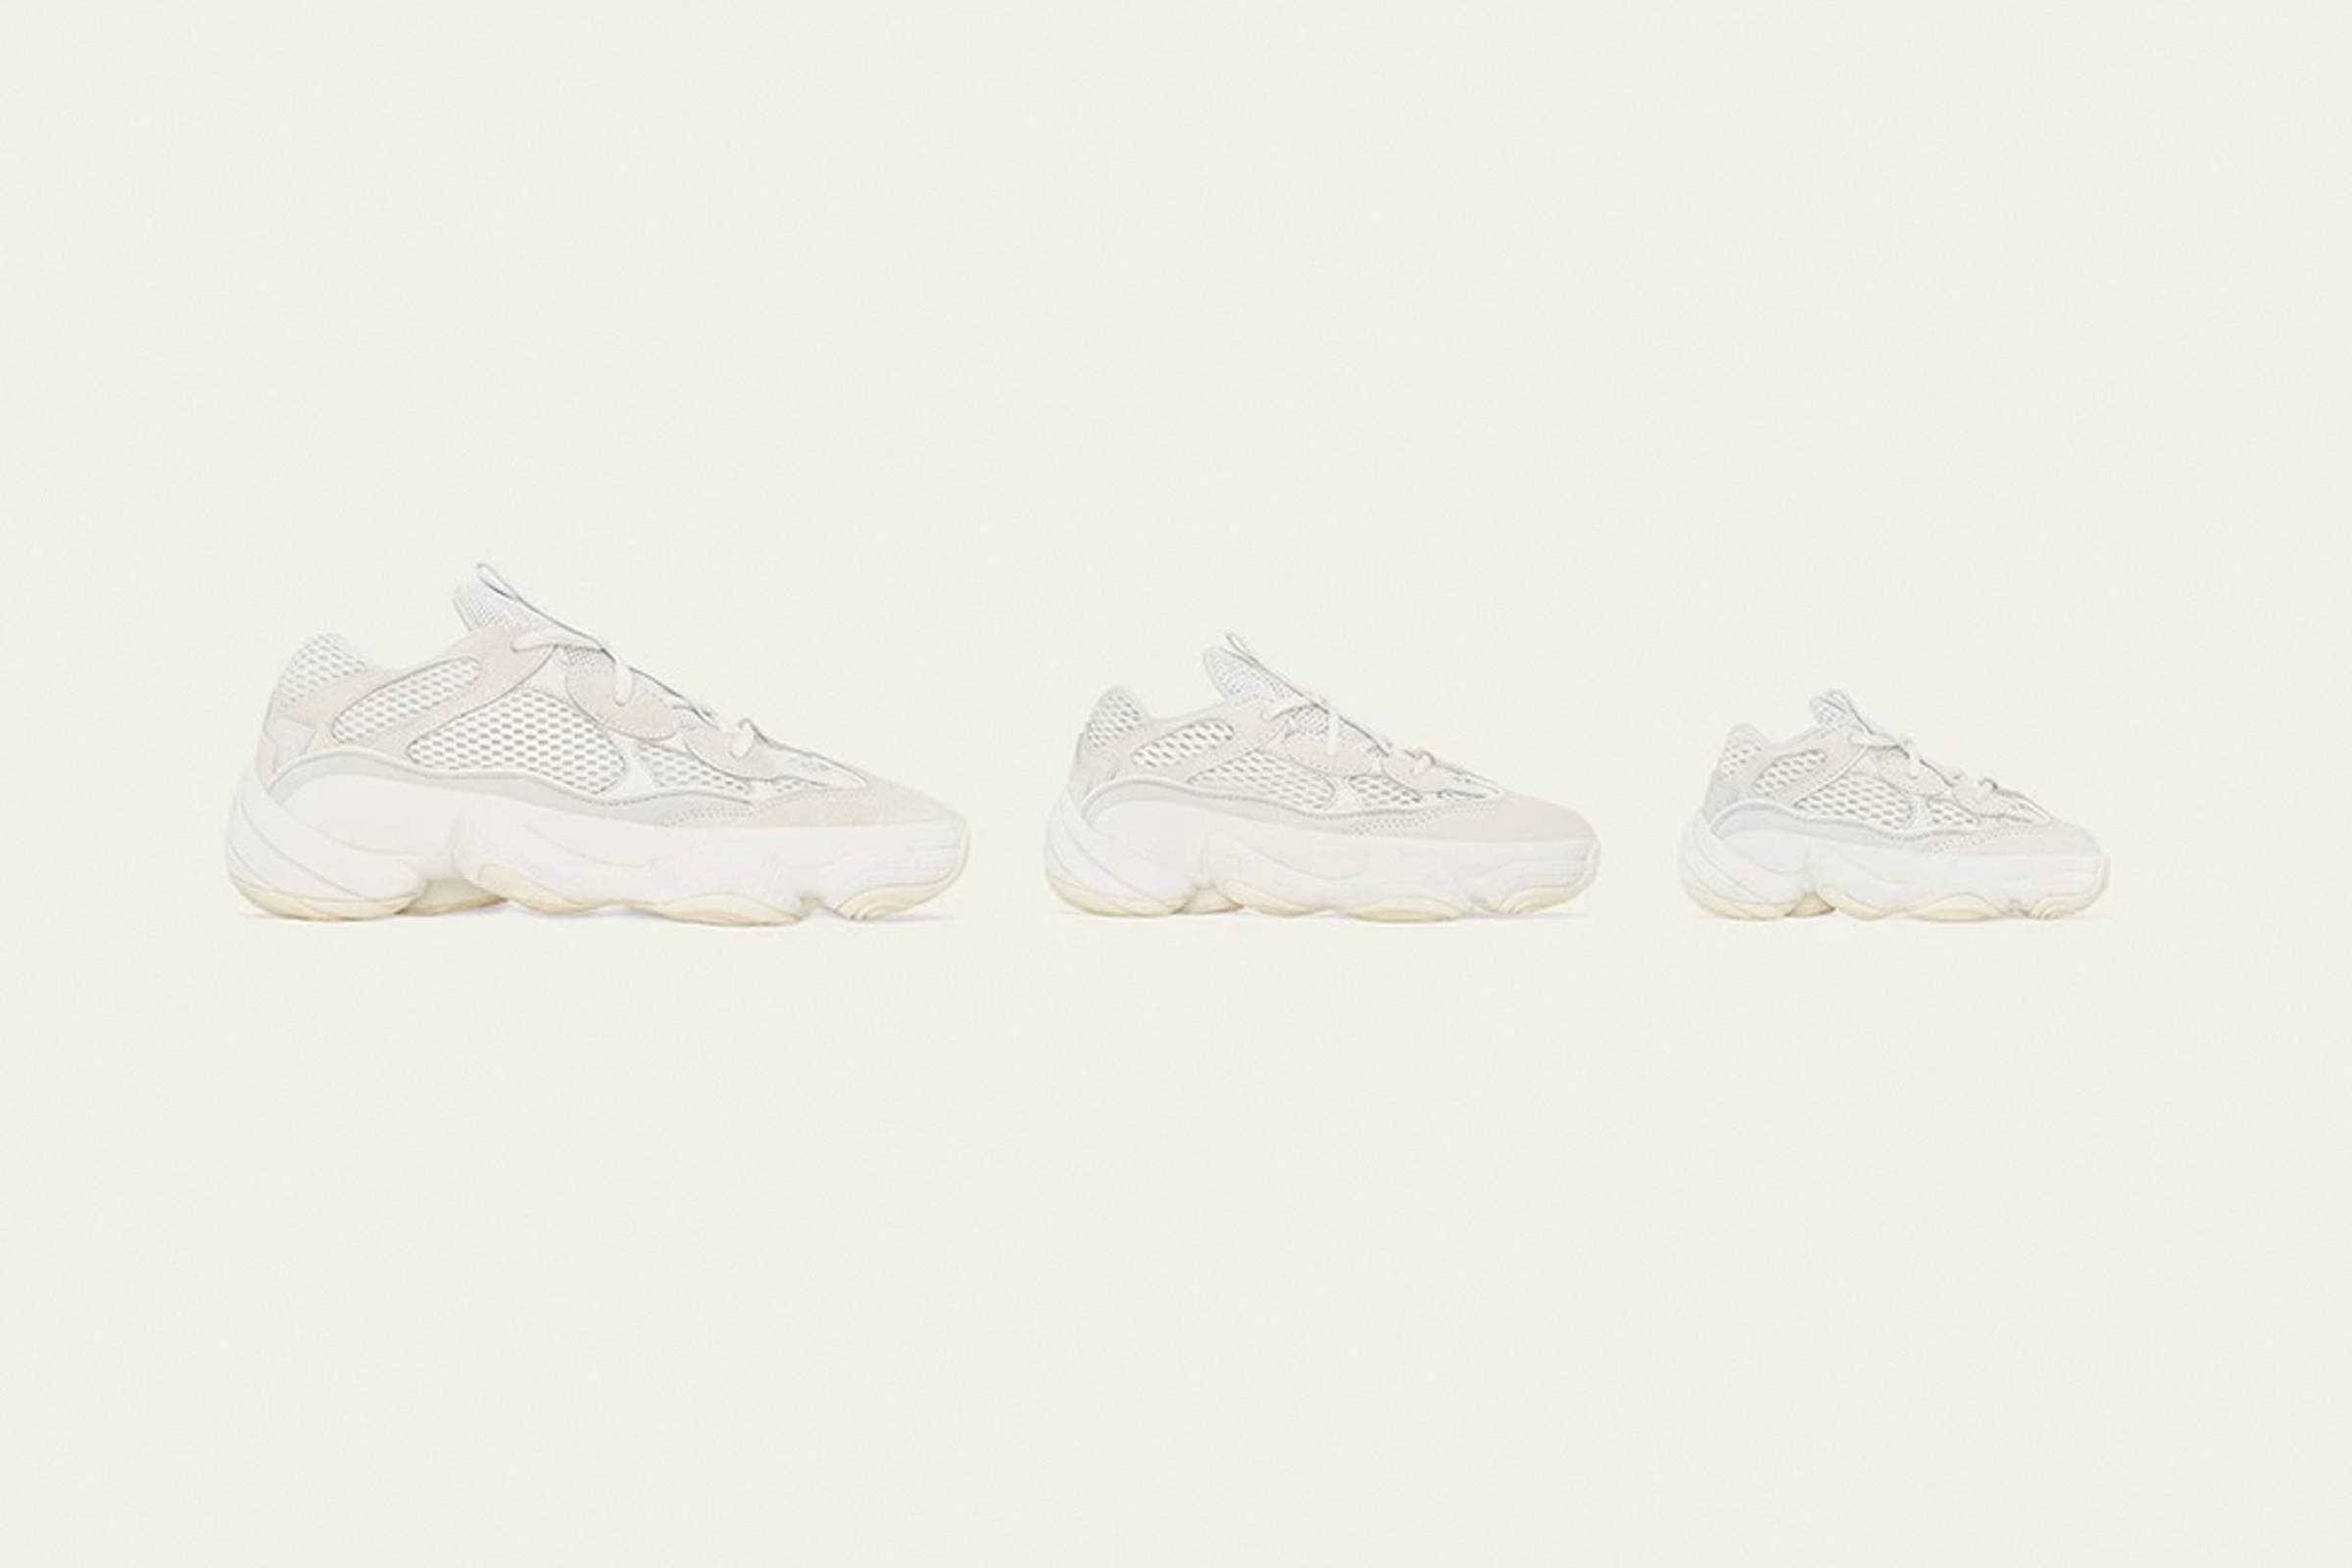 best loved 6114d 103b6 Yeezy Boost 500 Bone White Drops August 24 | Grailed